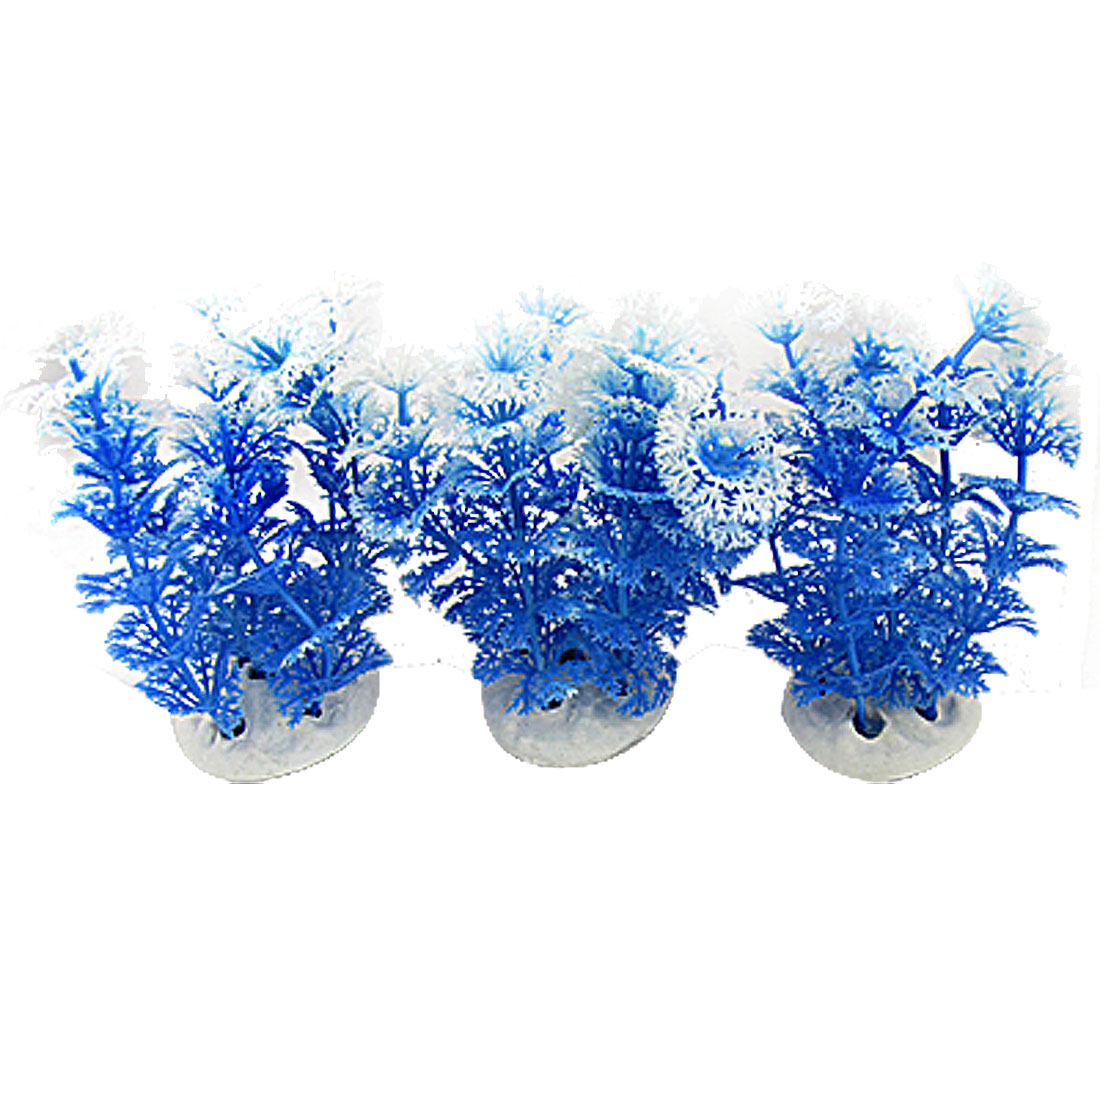 Aquarium 10.5CM Height Blue White Plastic Grass Ornament 3PCS